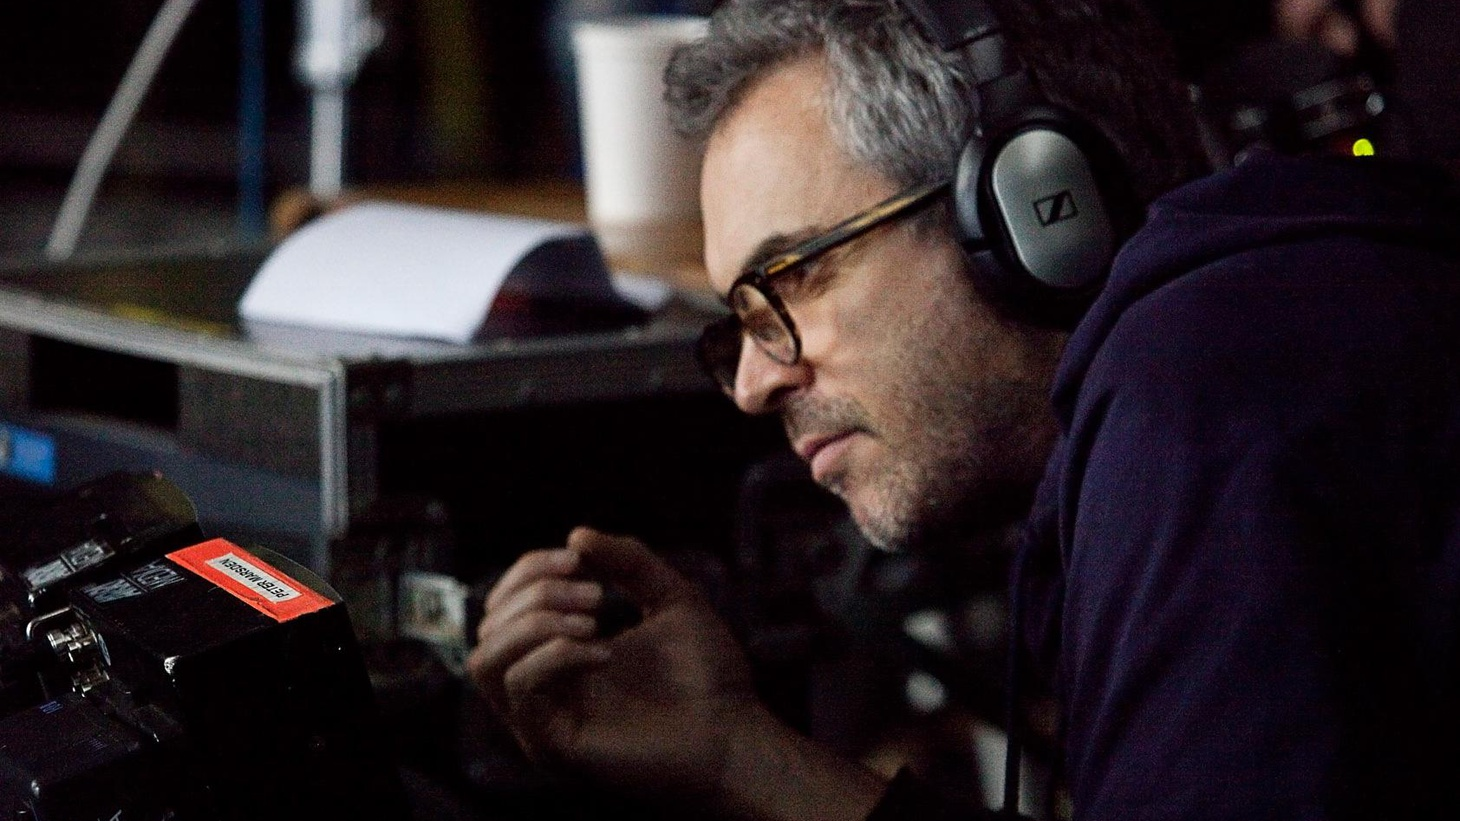 He's got the Critics Choice, Golden Globe, and DGA Awards for Best Director. Is an Oscar in the cards for Alfonso Cuarón?